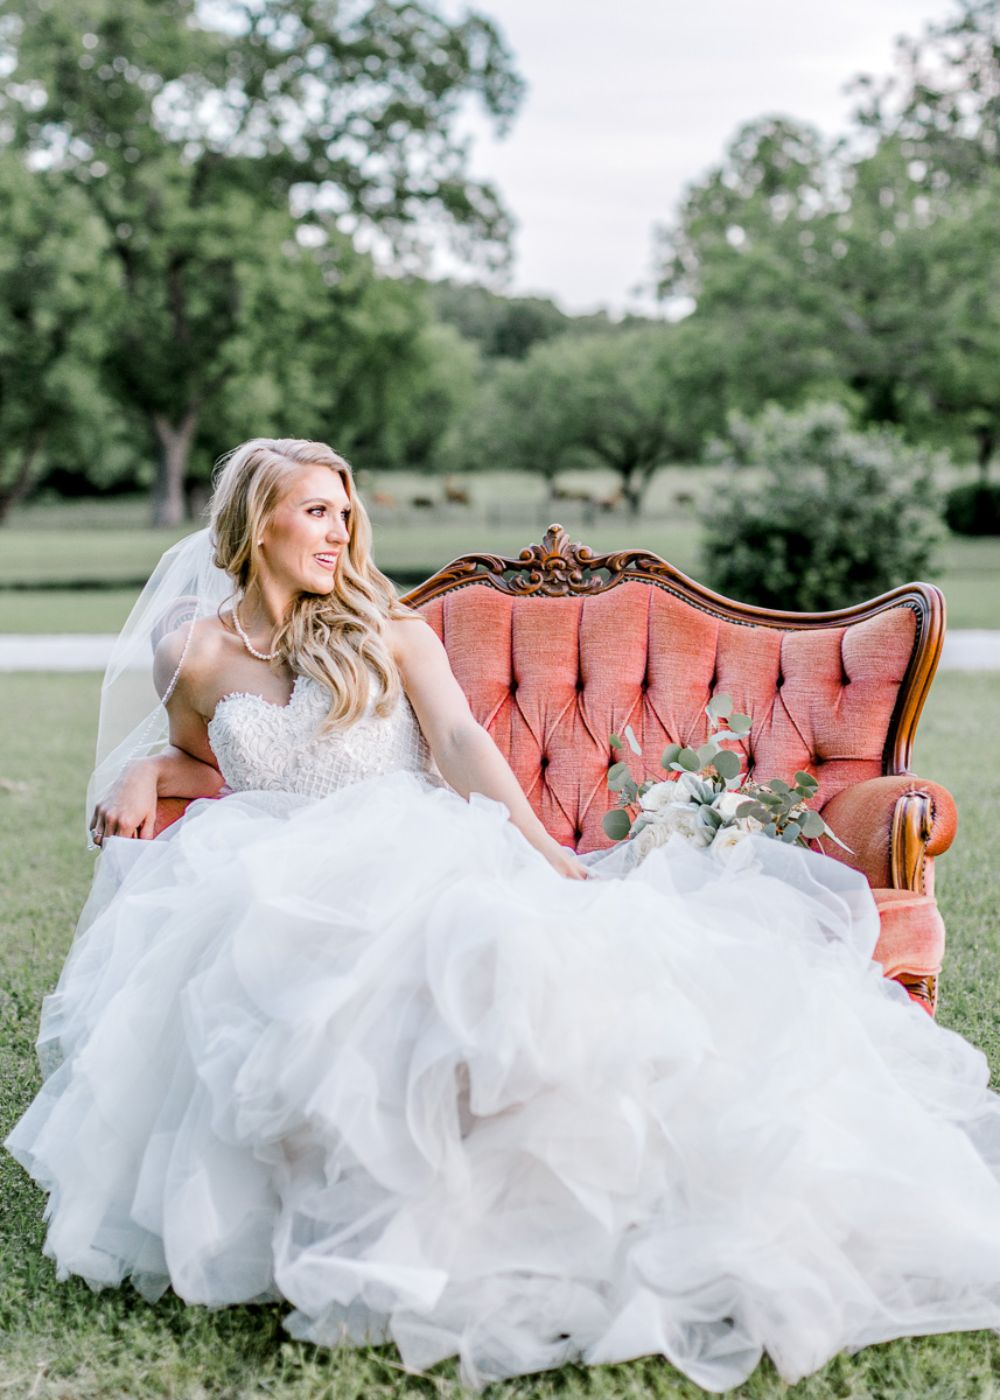 katelyn-bridals-the-orchard-event-venue-35.jpg